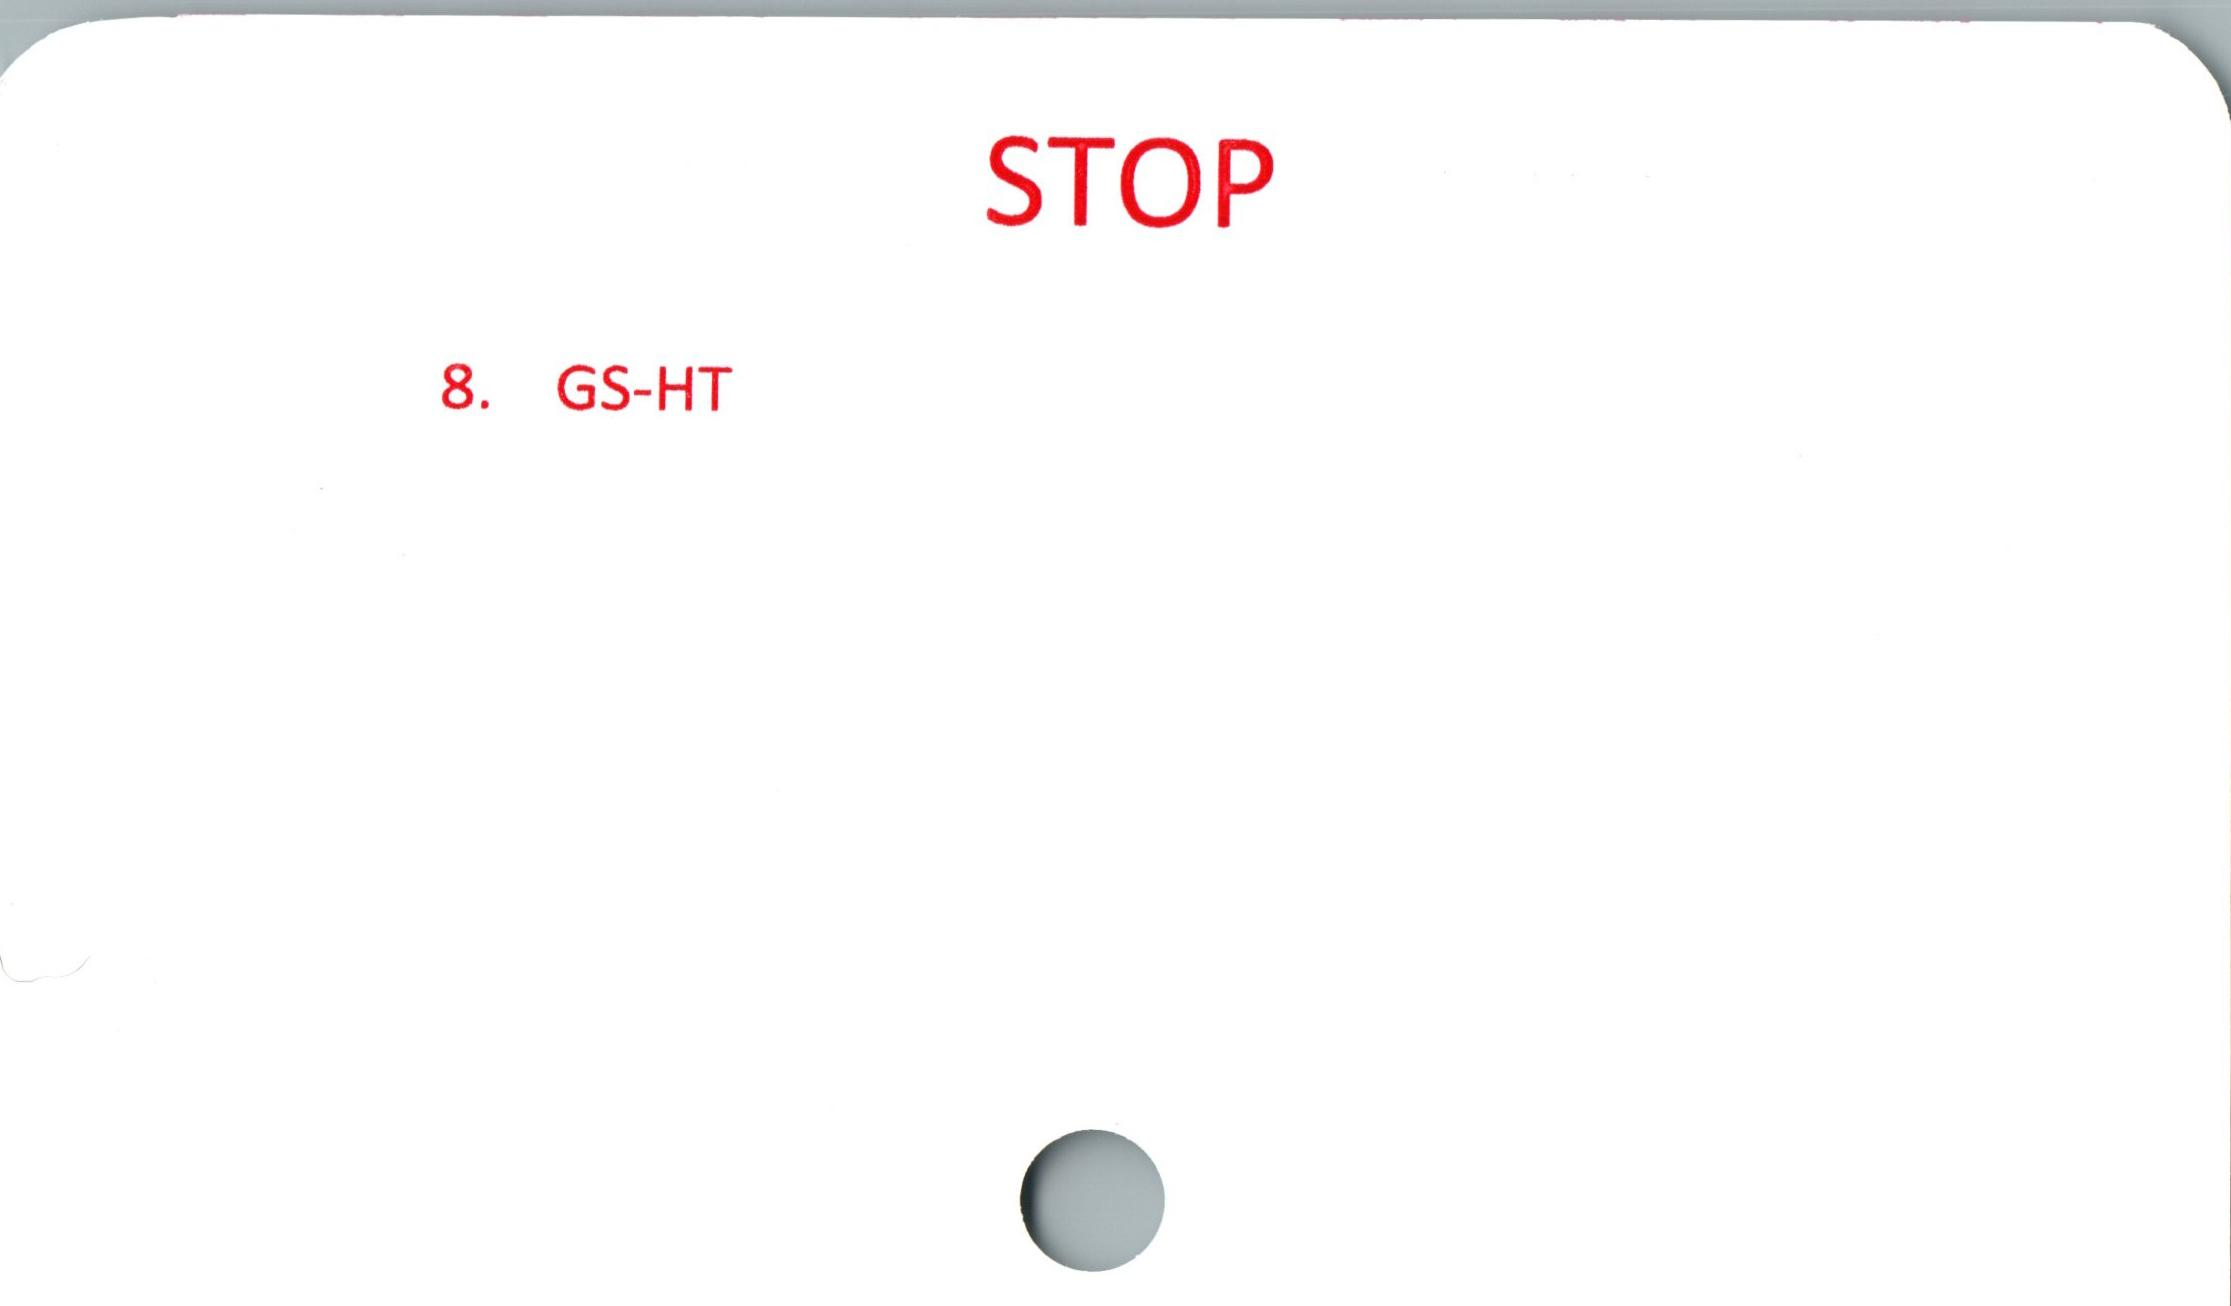 8. GS-  '  STOP